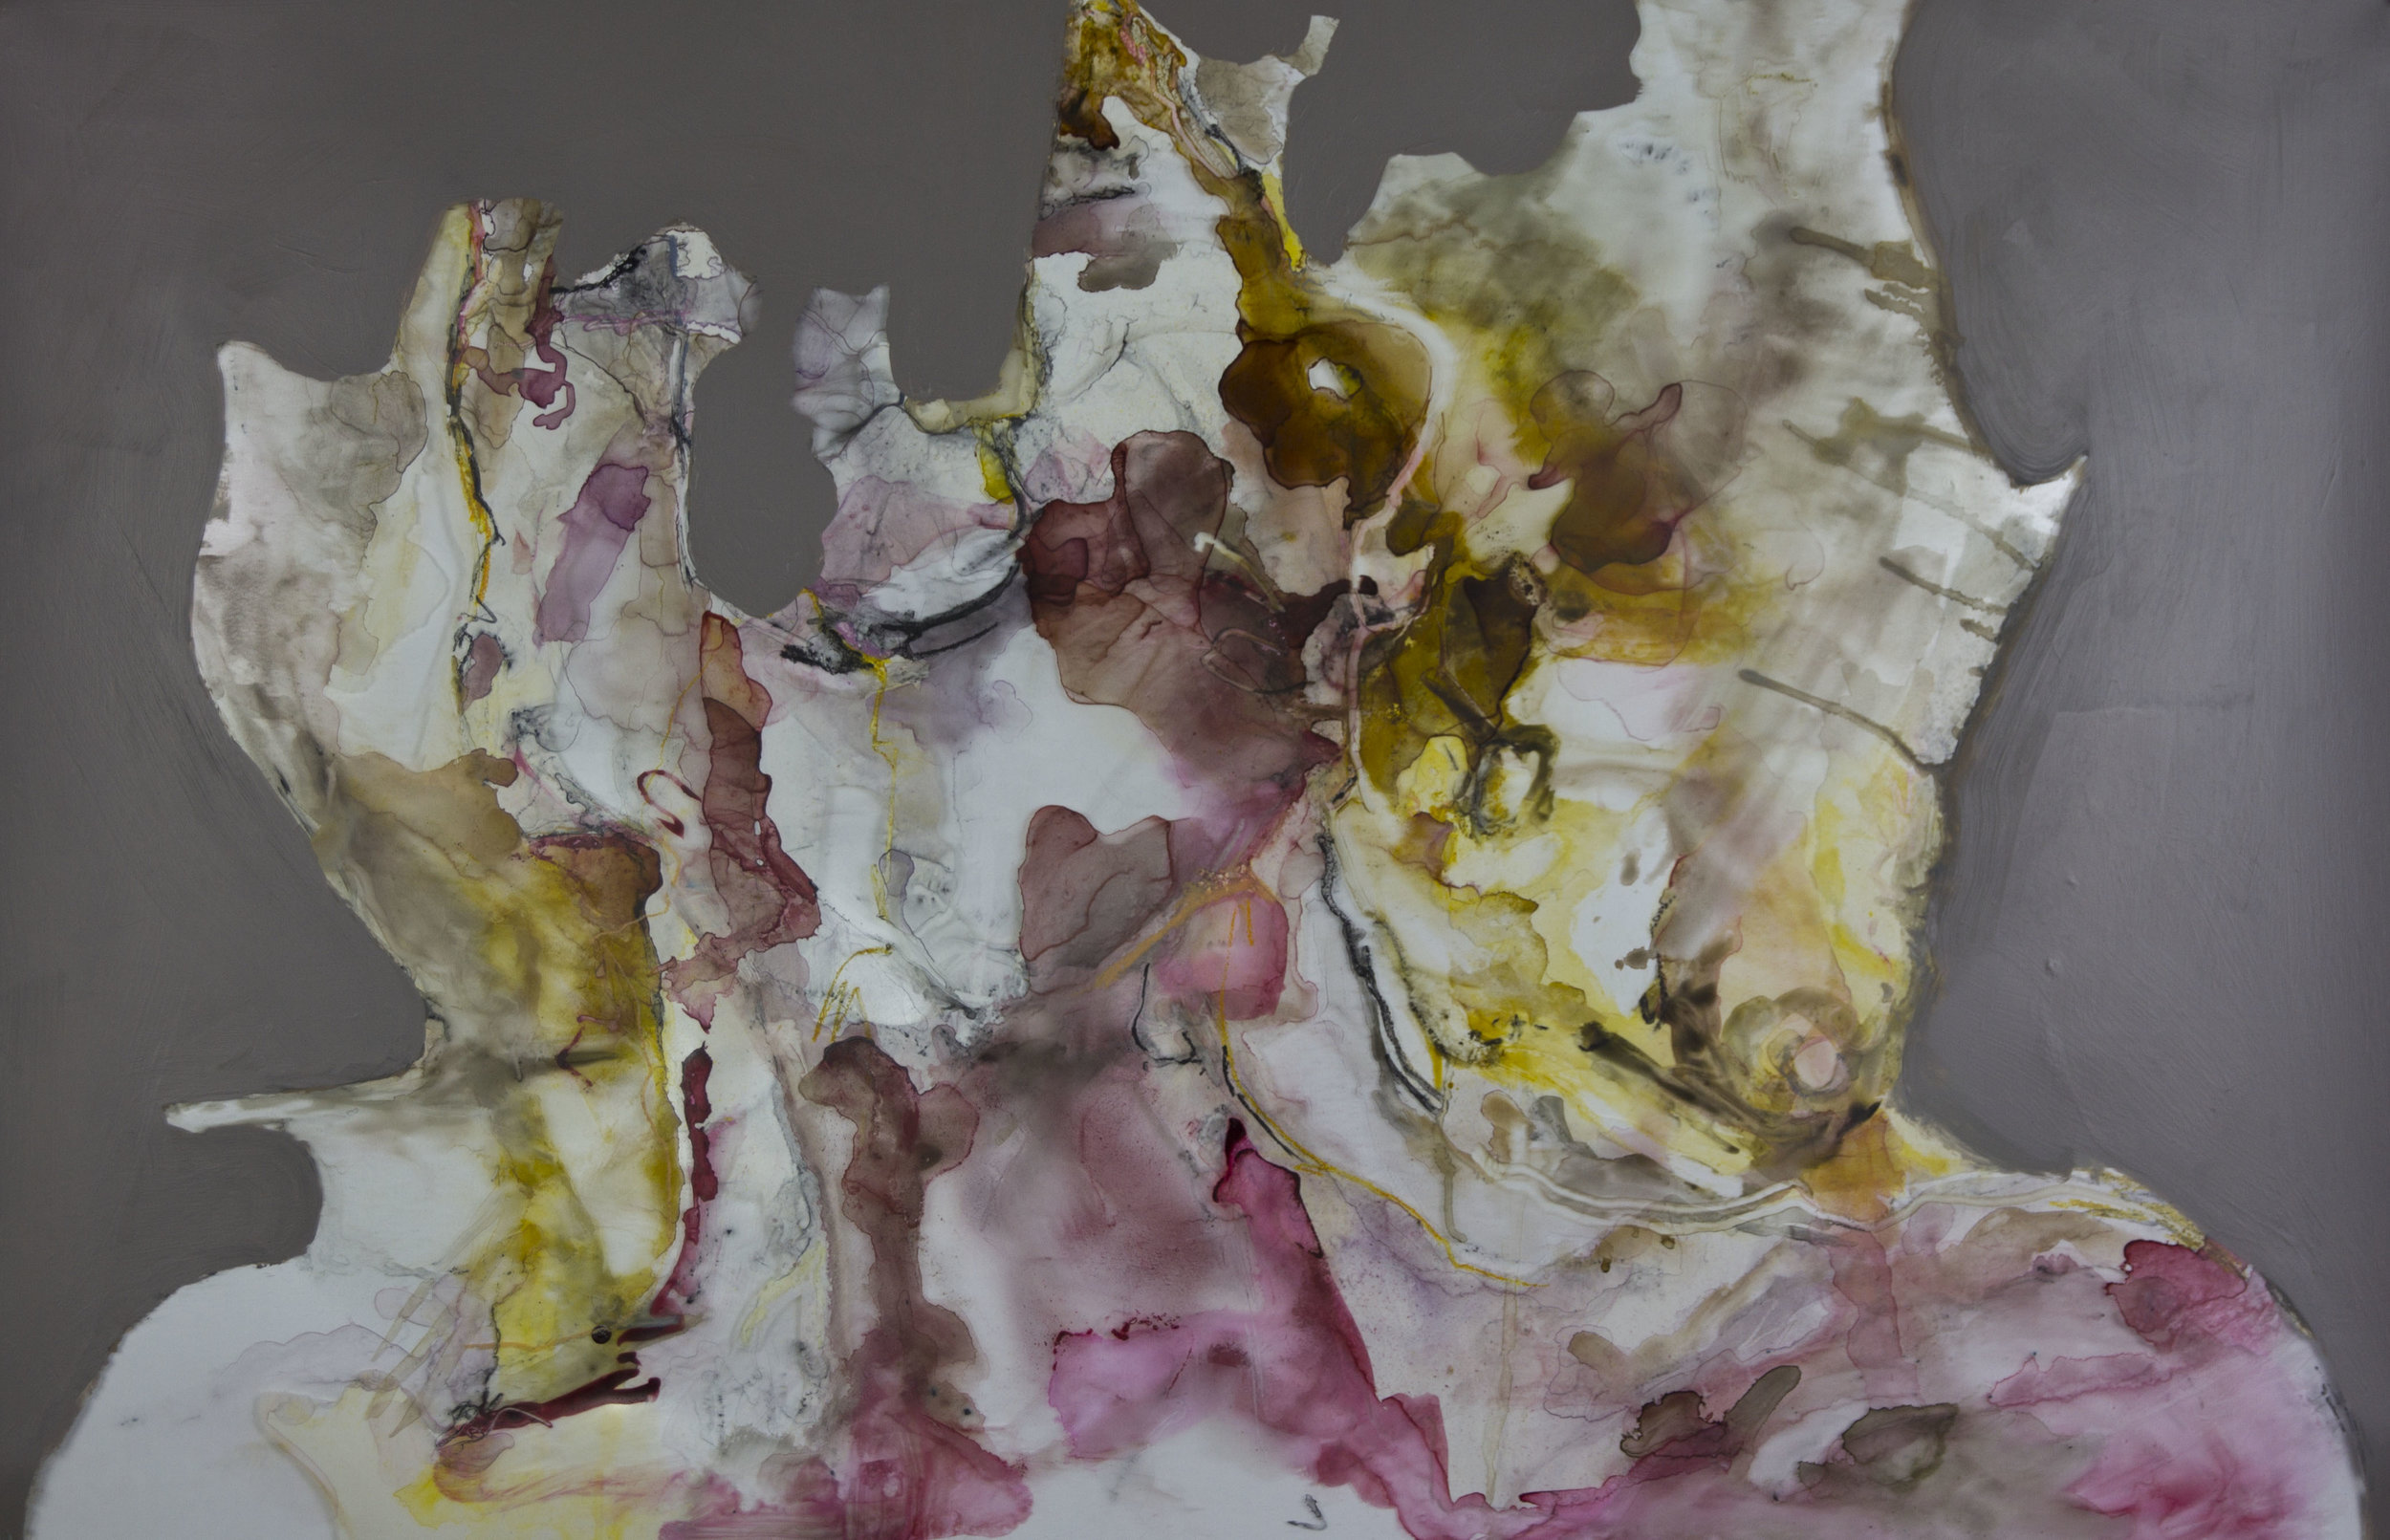 Membrane Apparatus, 2011, watercolor and Acrylic on mylar, 40x50 inches